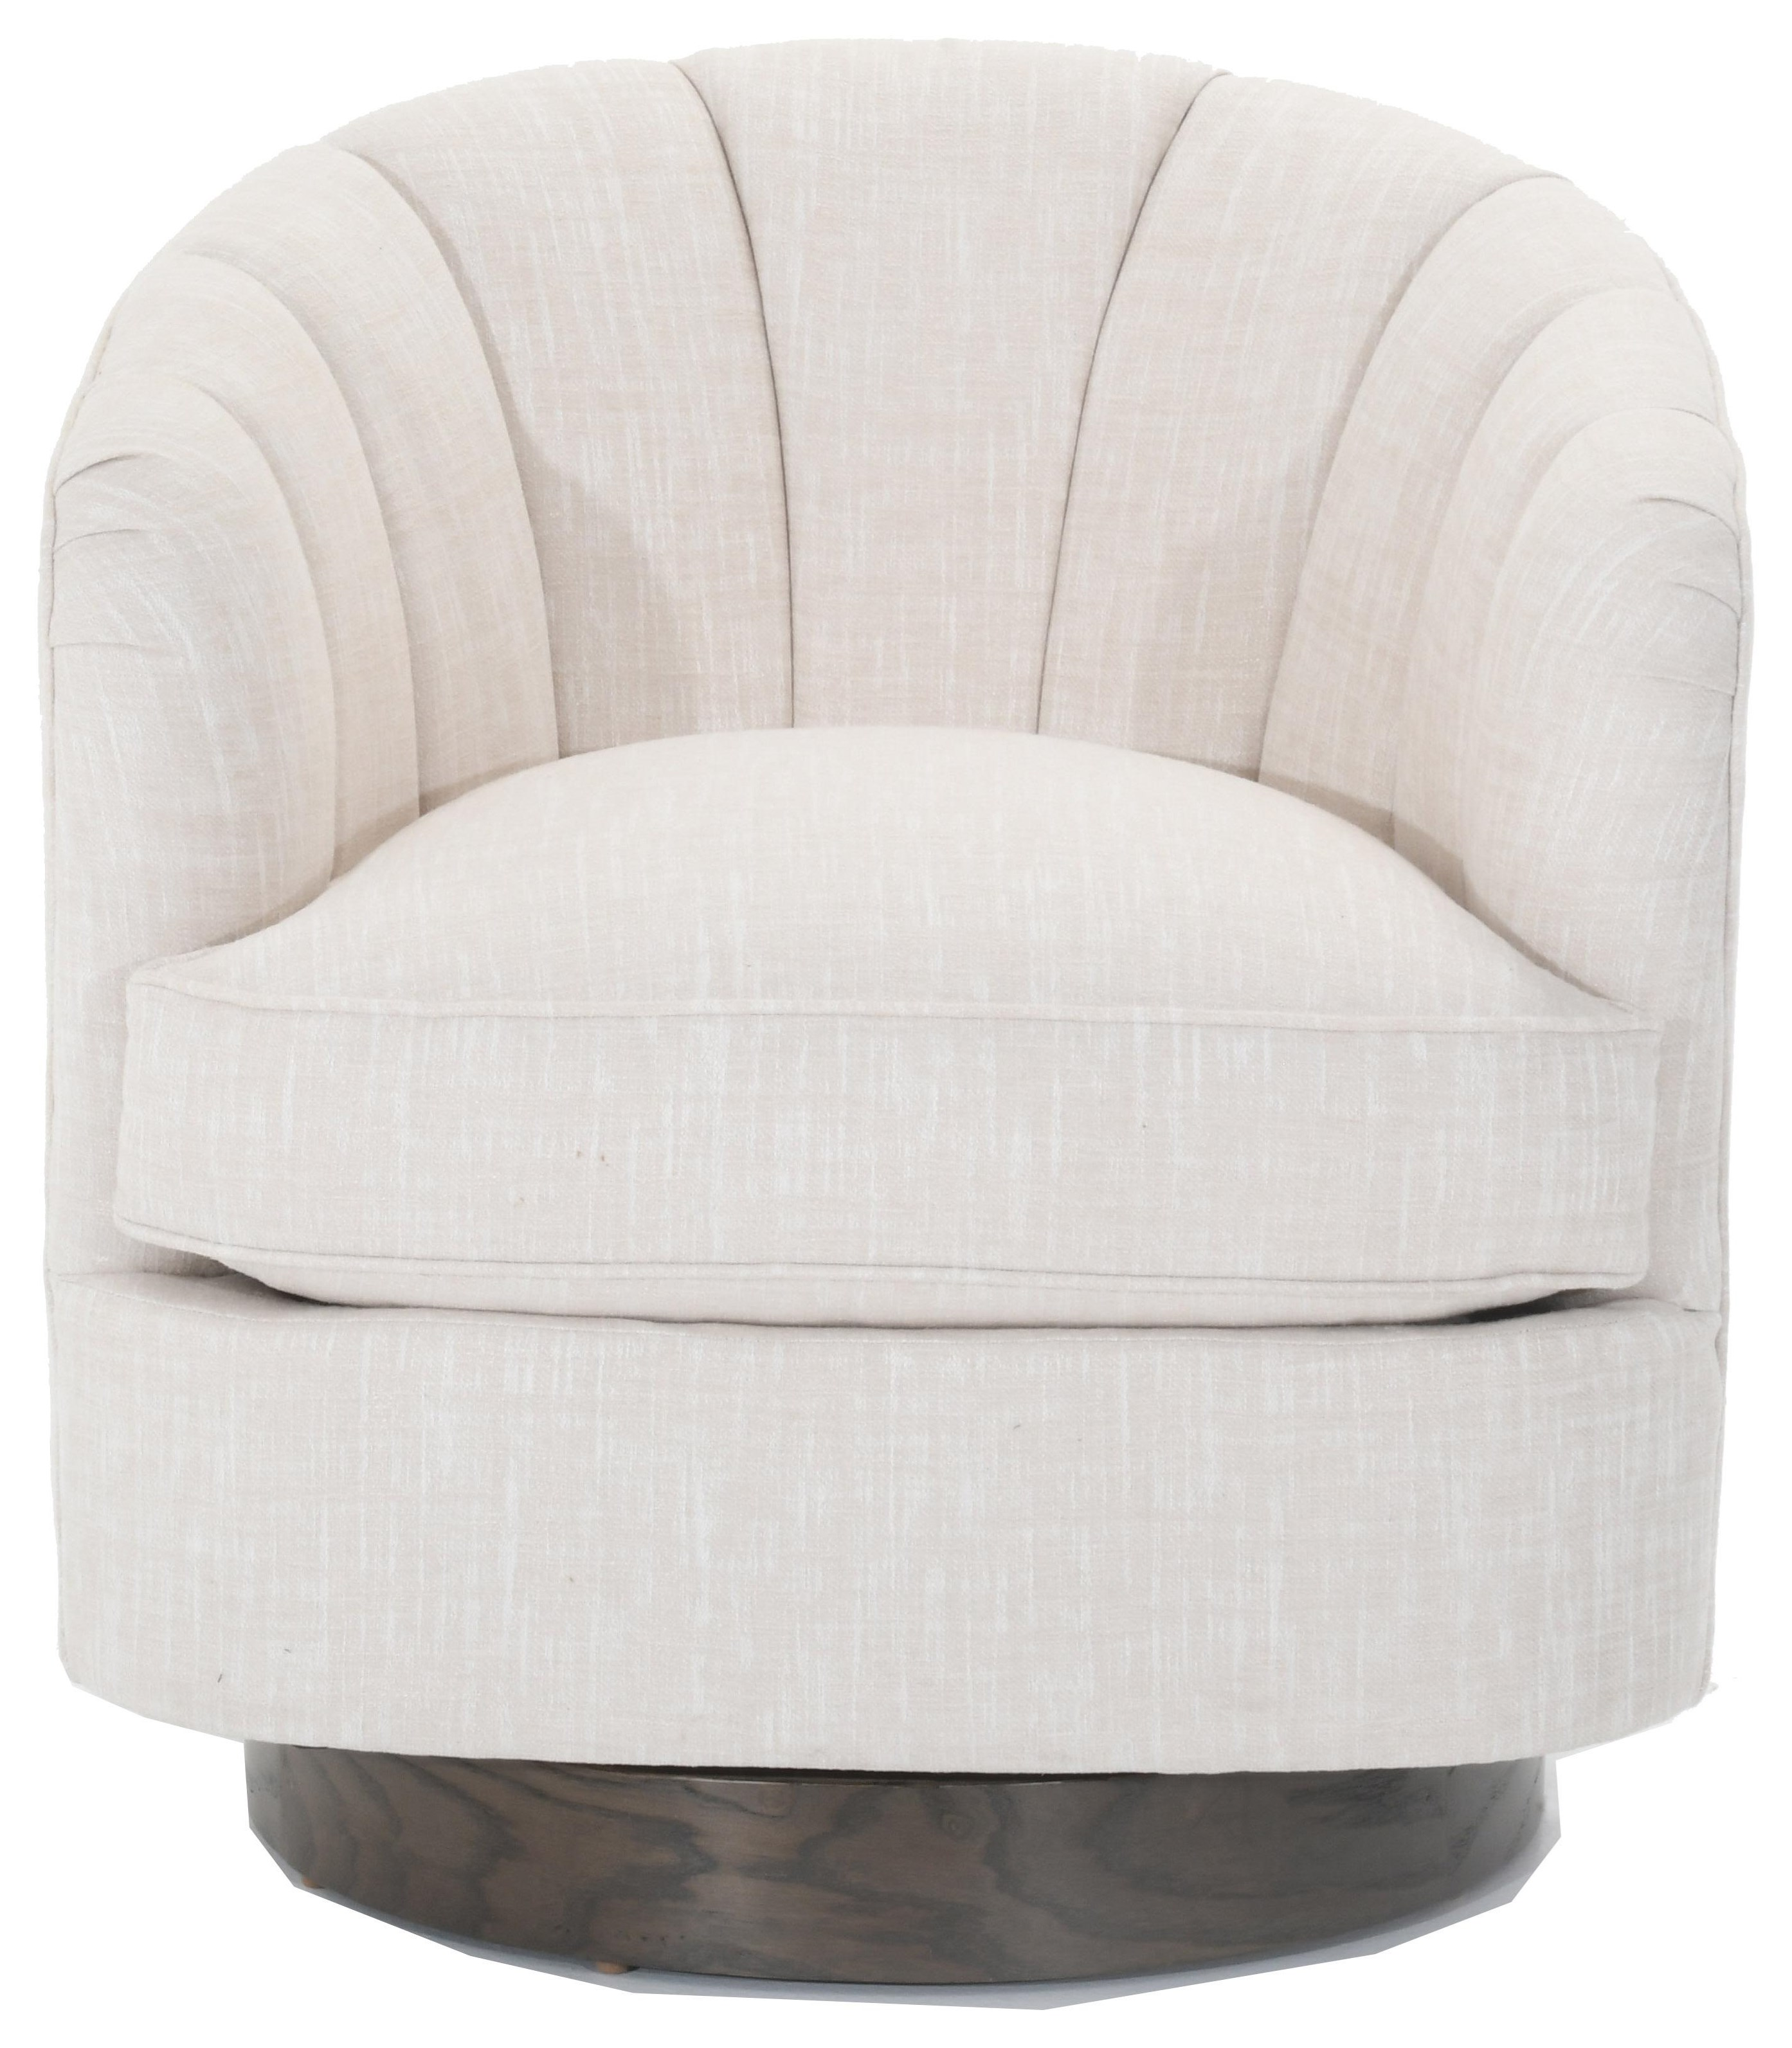 Swivel Accent Chairs Tipsy Swivel Chair by Fairfield at Baer's Furniture